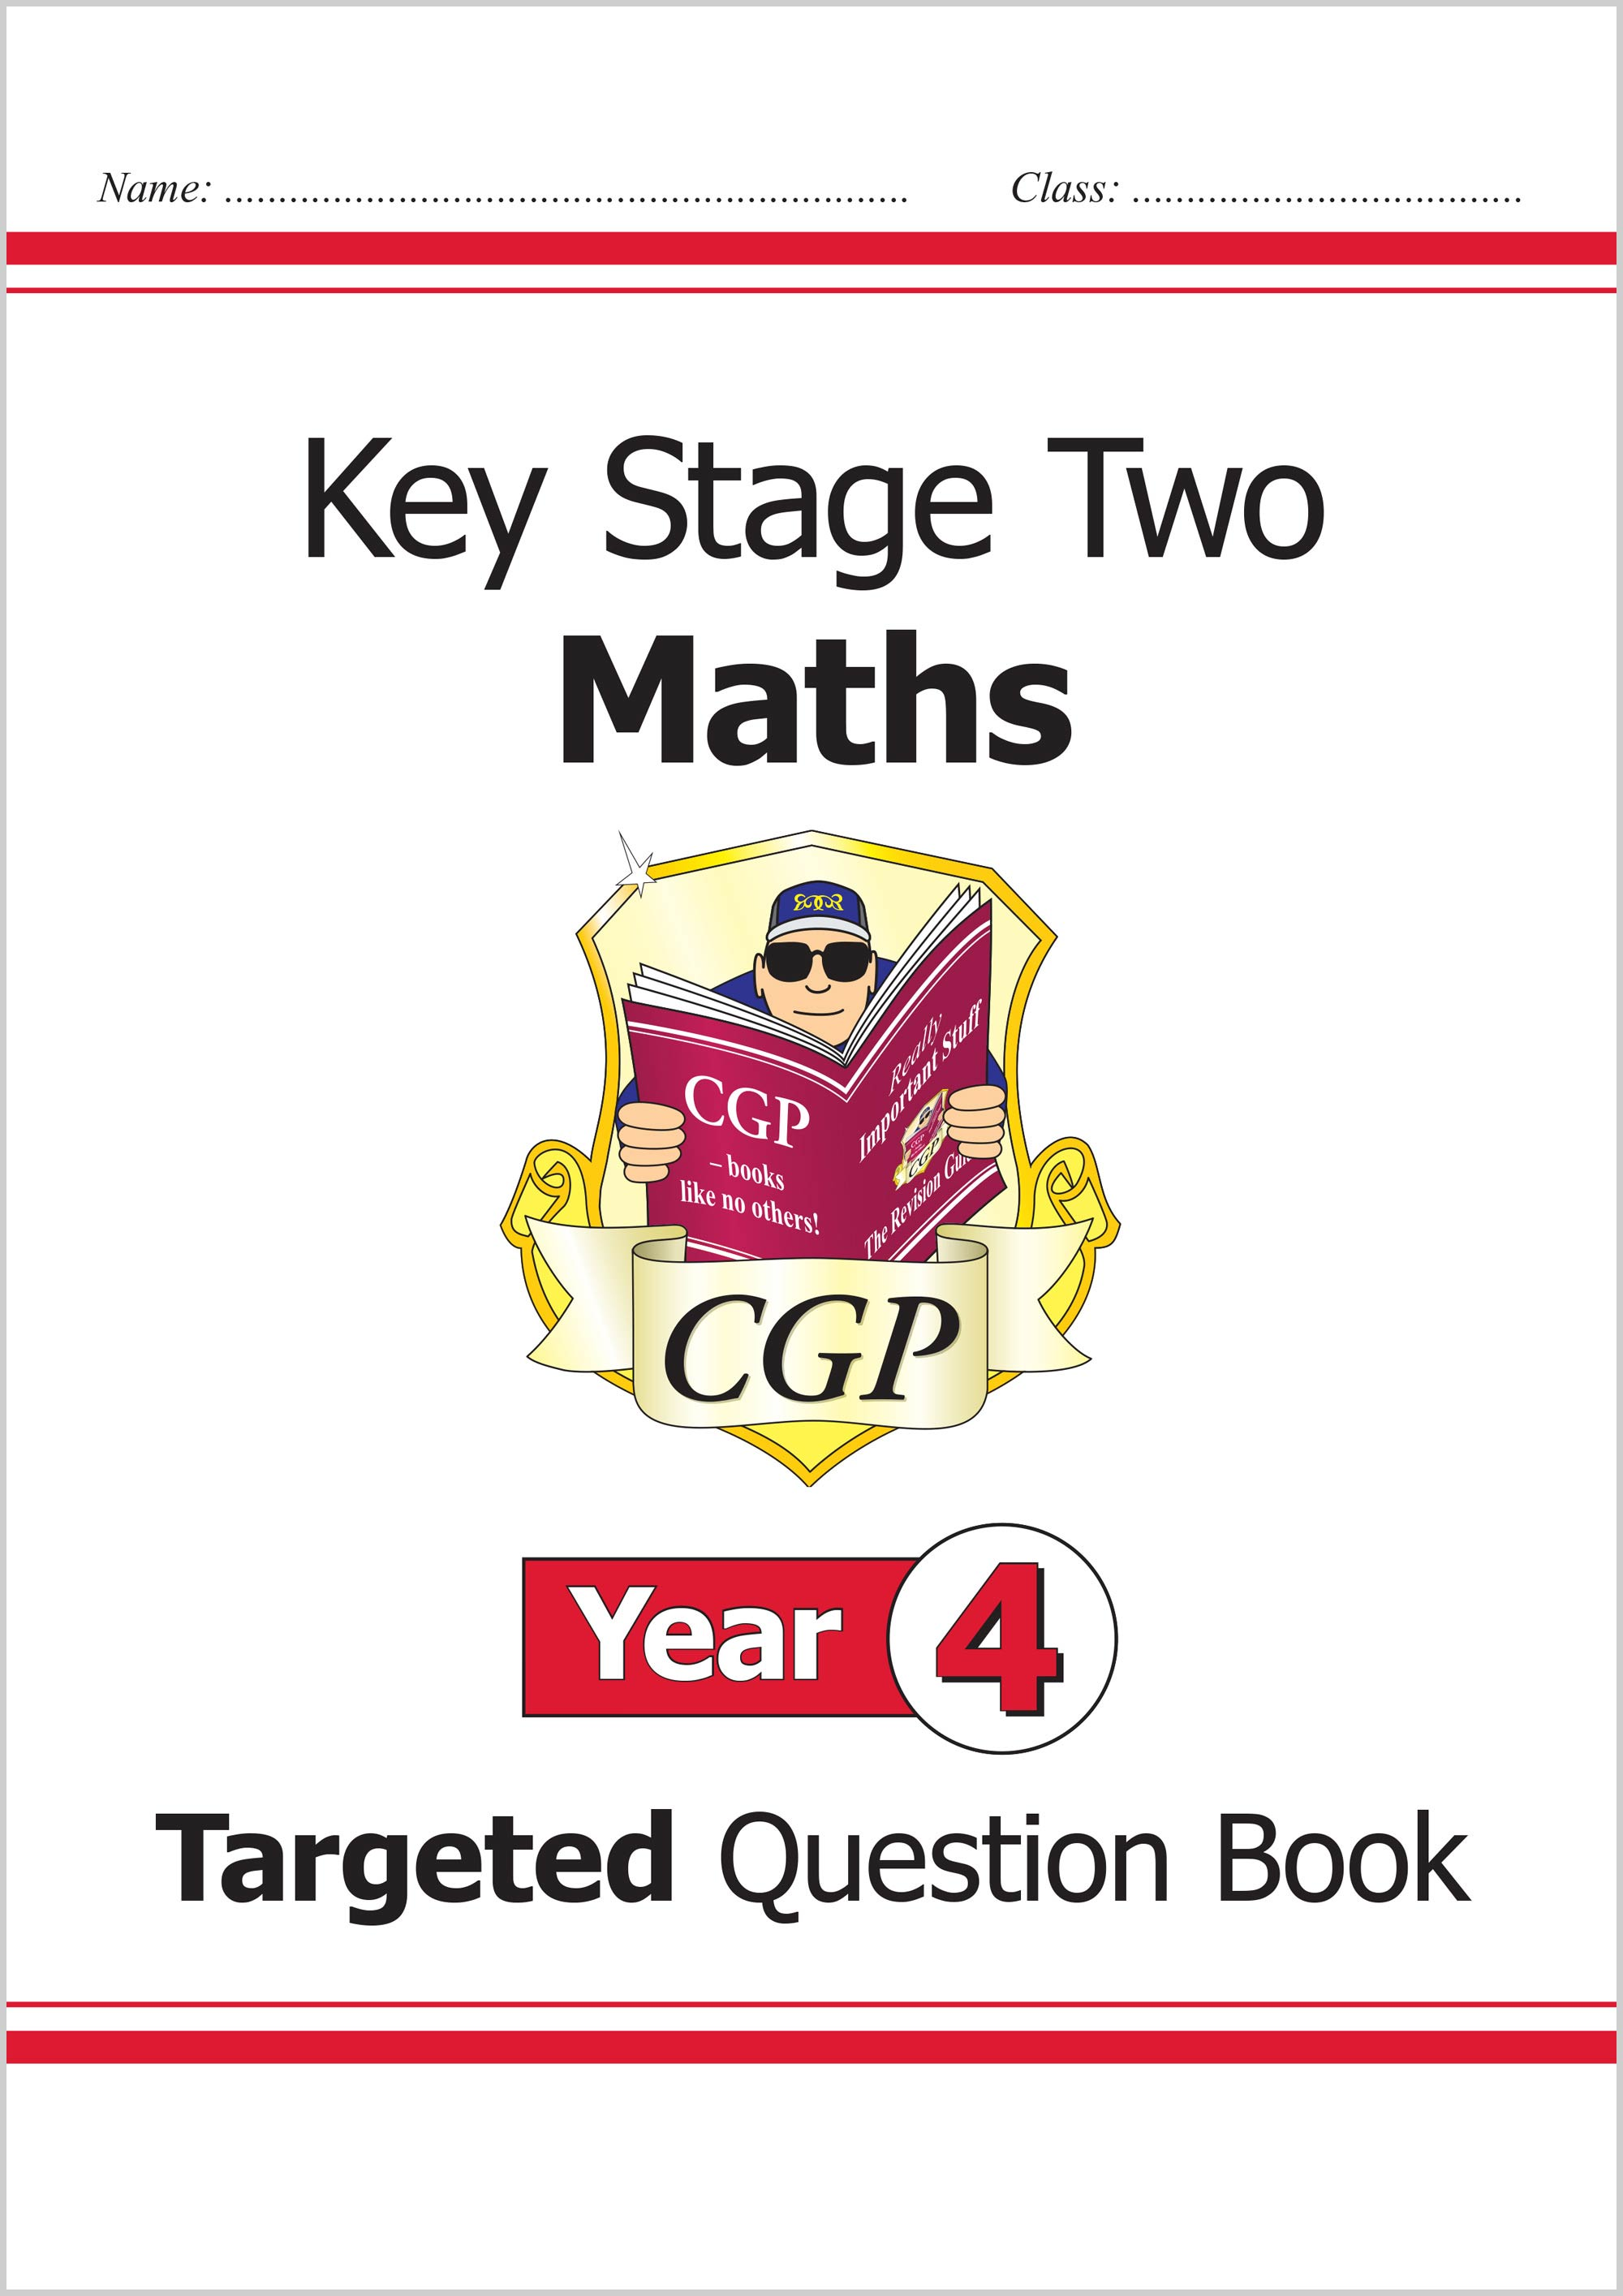 M4Q24 - KS2 Maths Targeted Question Book - Year 4